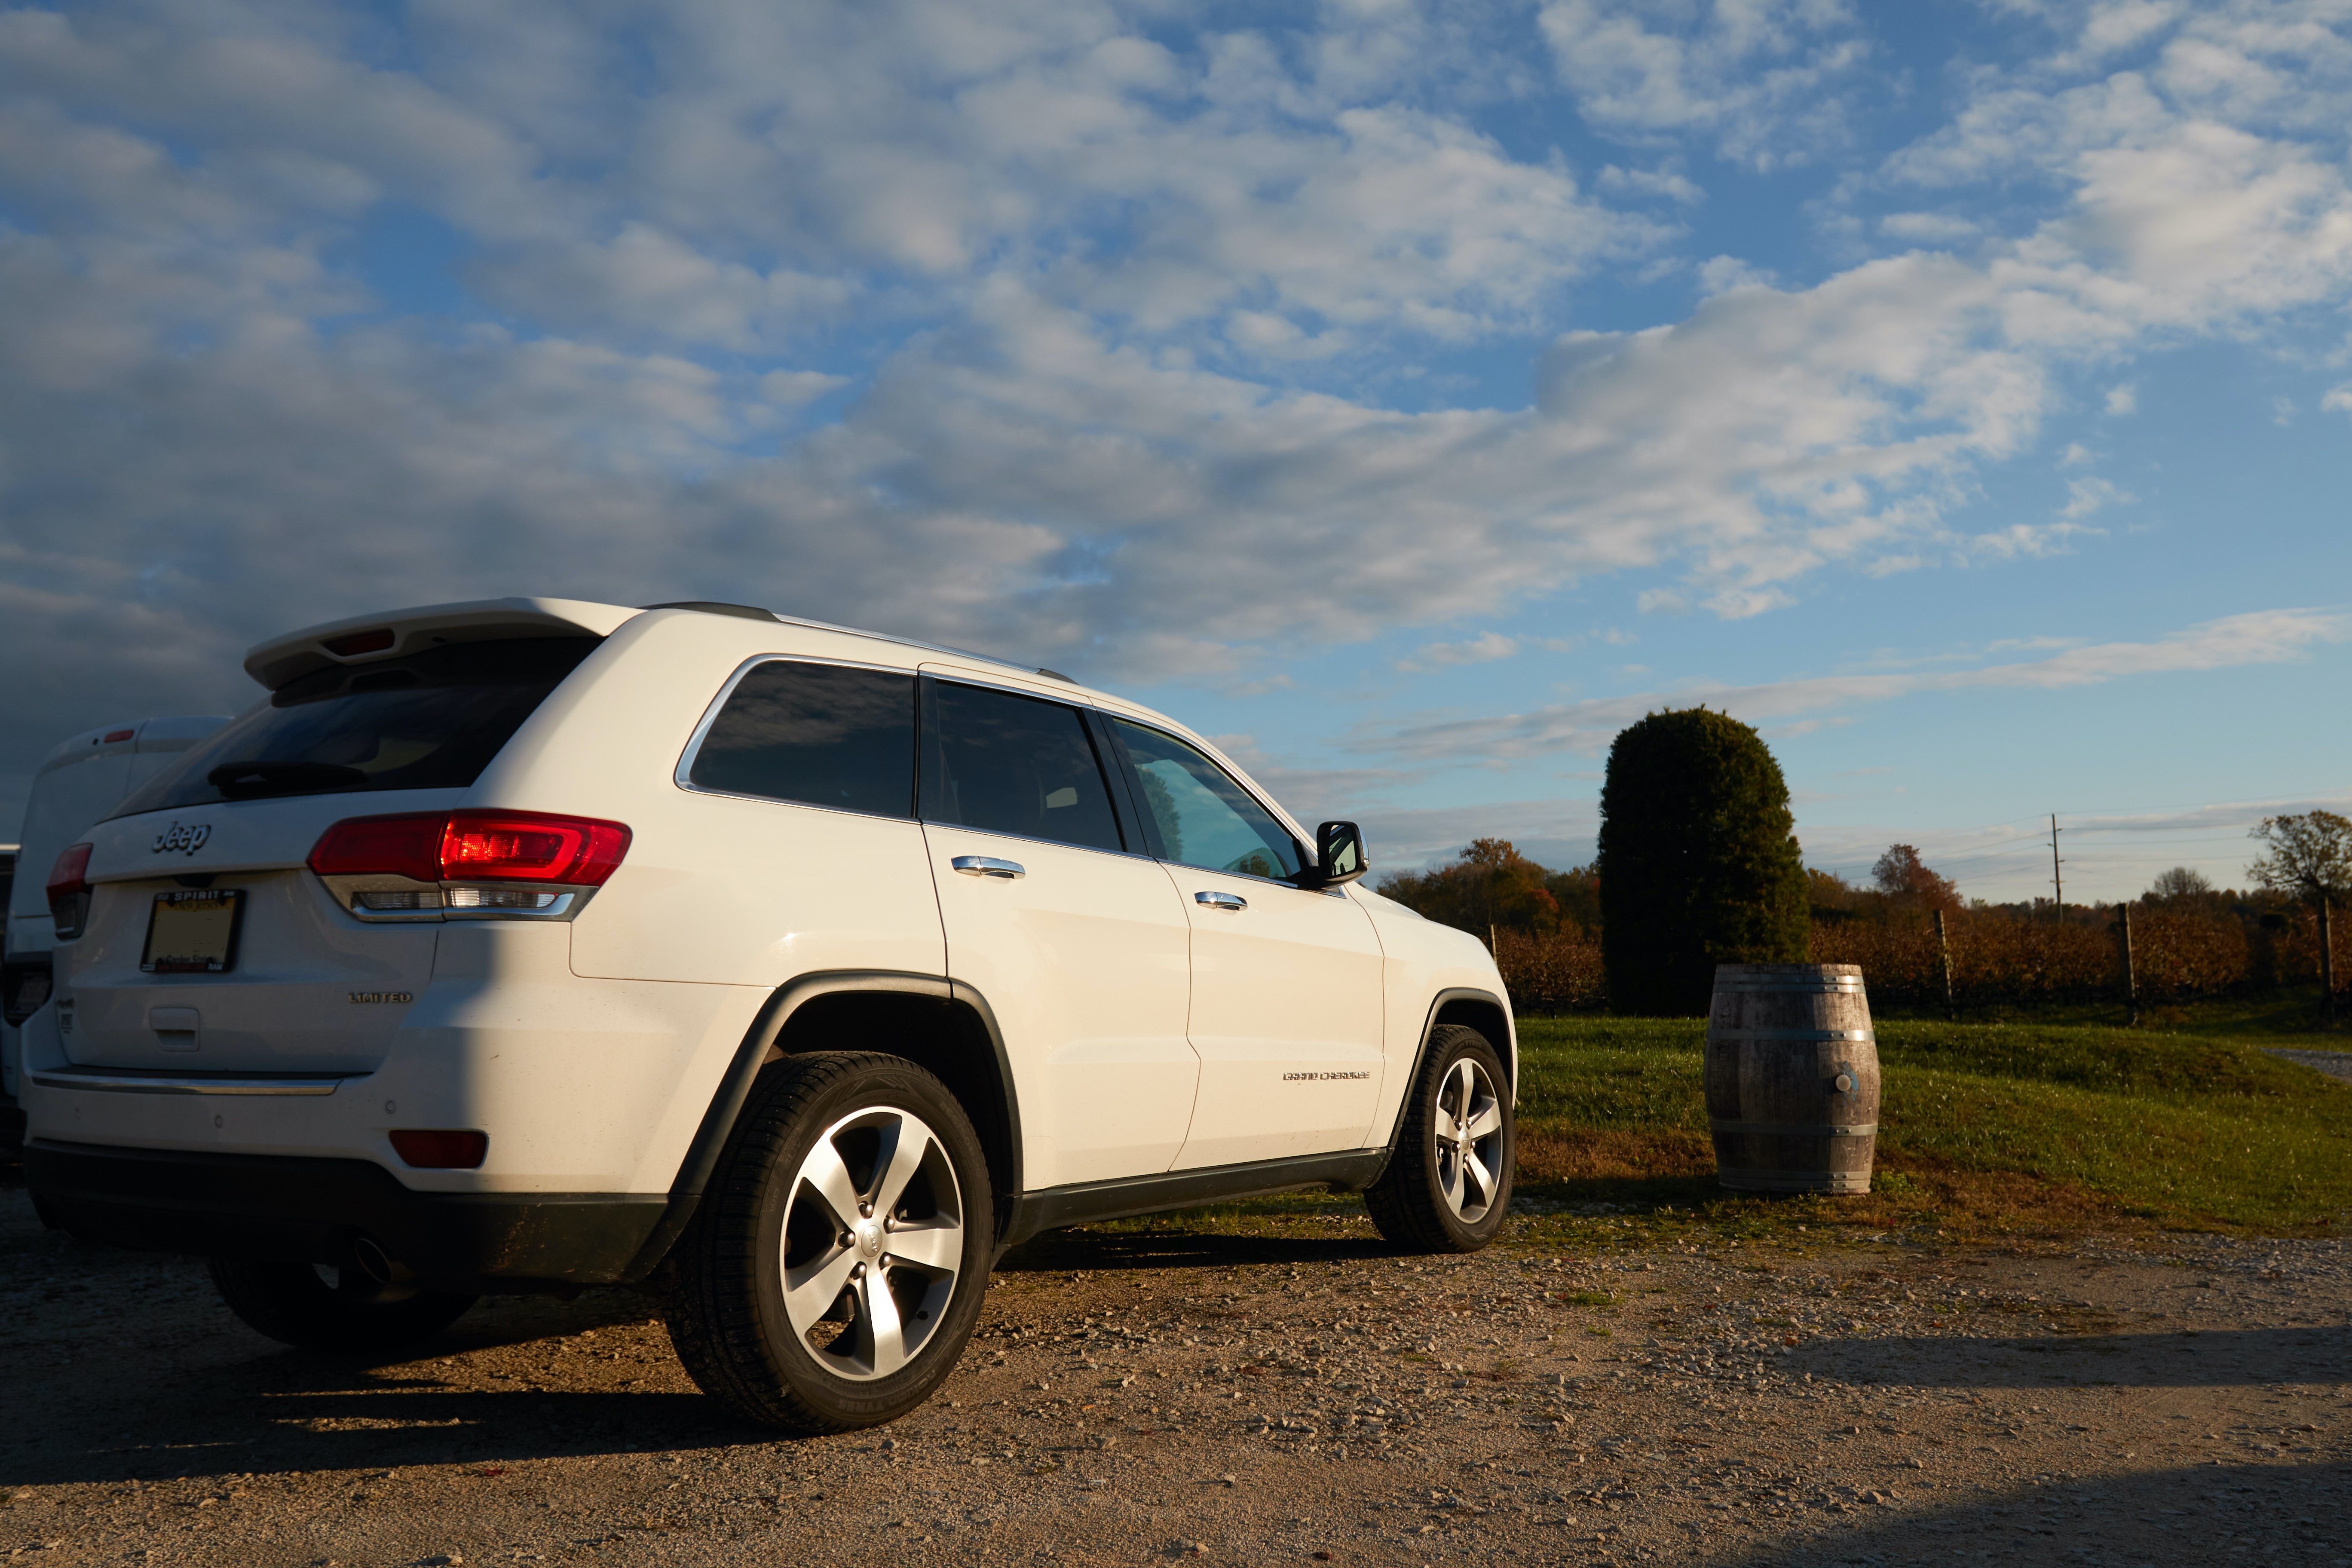 2014 White Jeep Grand Cherokee parked in vineyard.